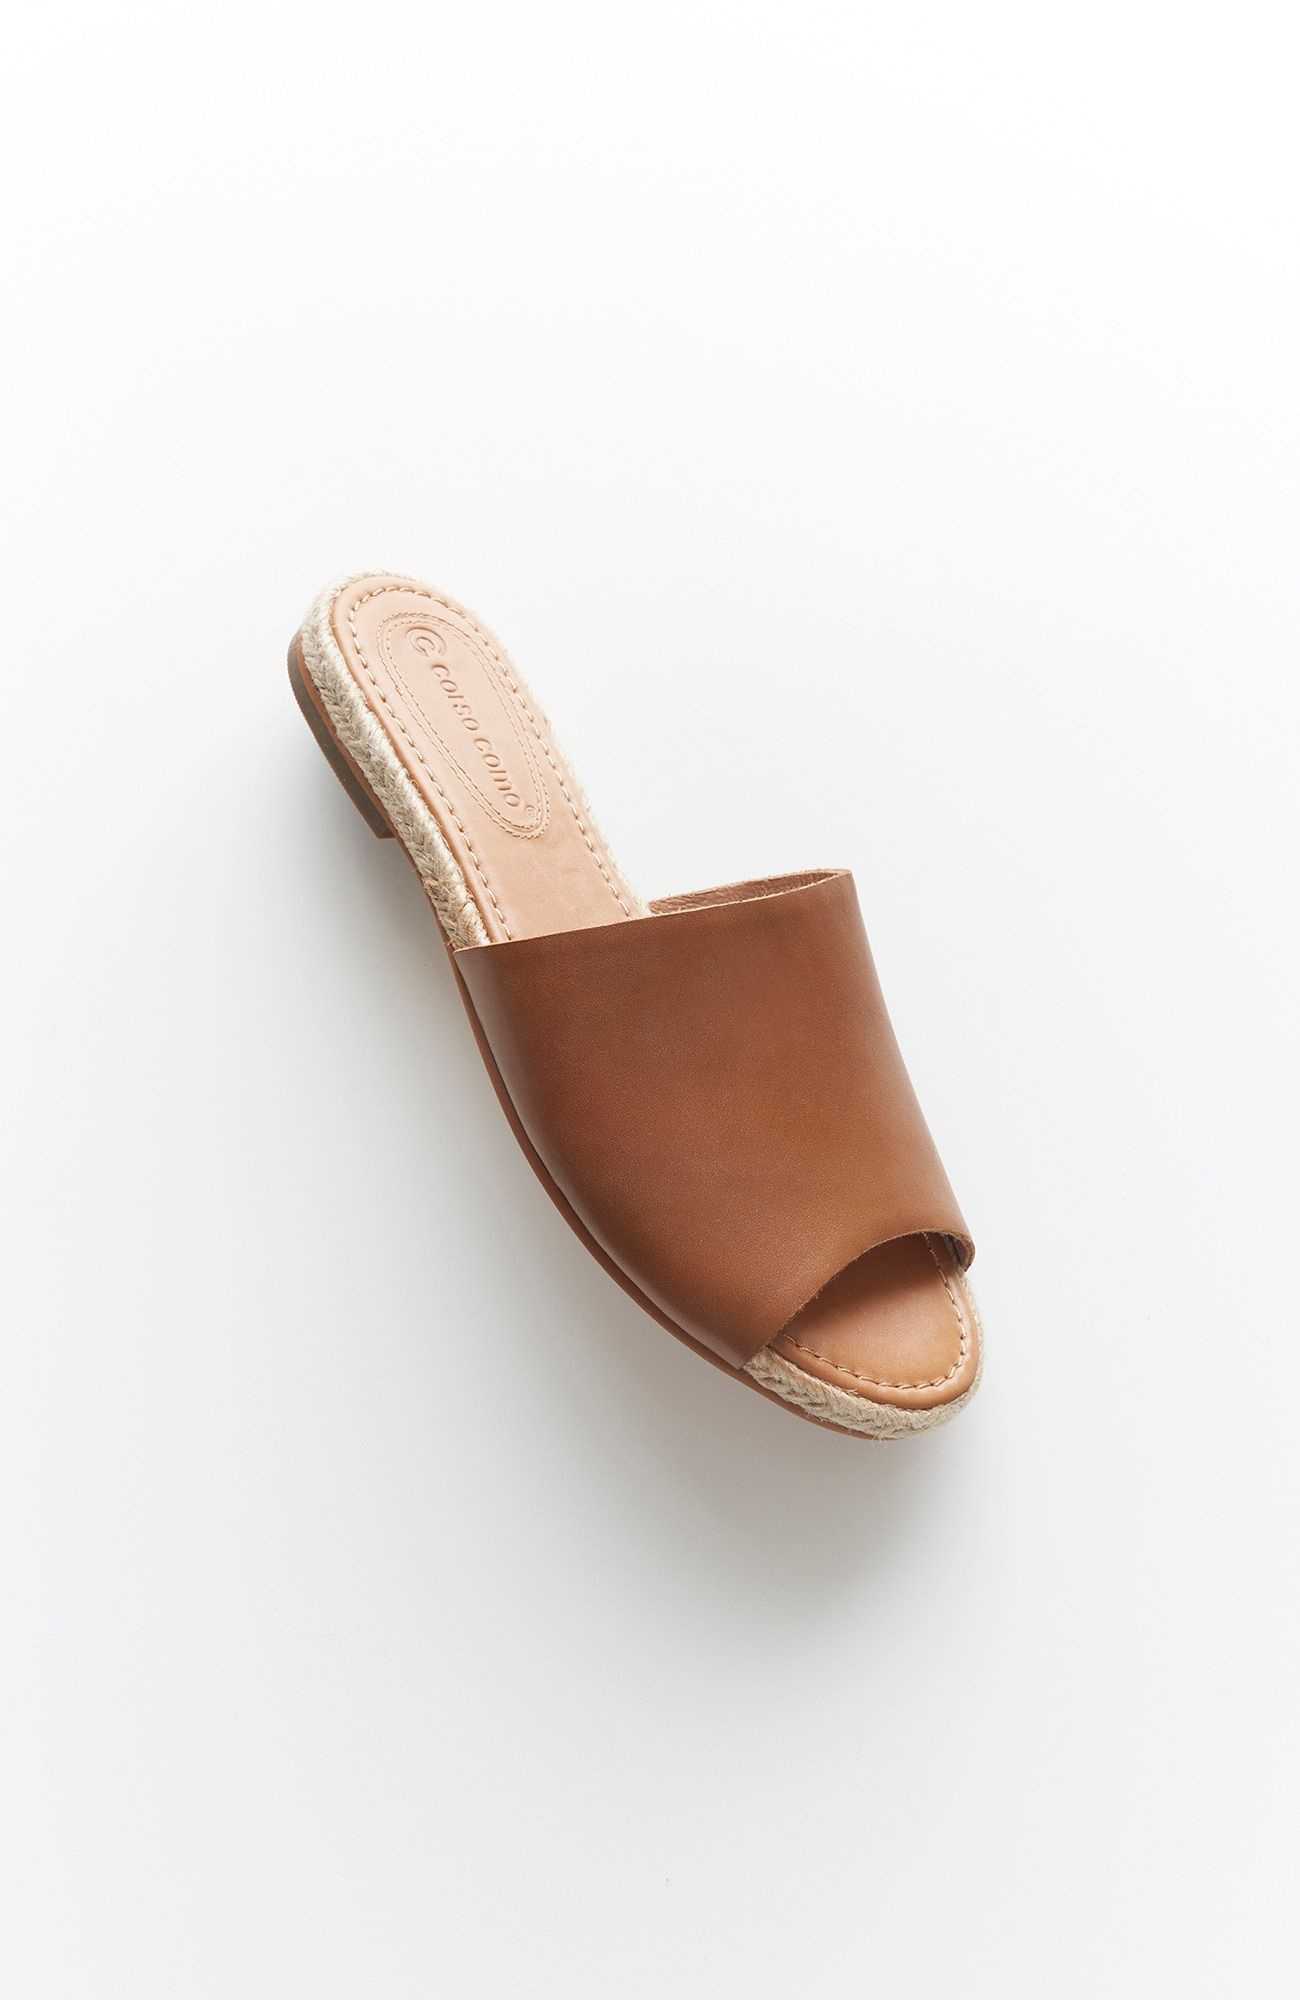 Corso Como® for J.Jill leather slides